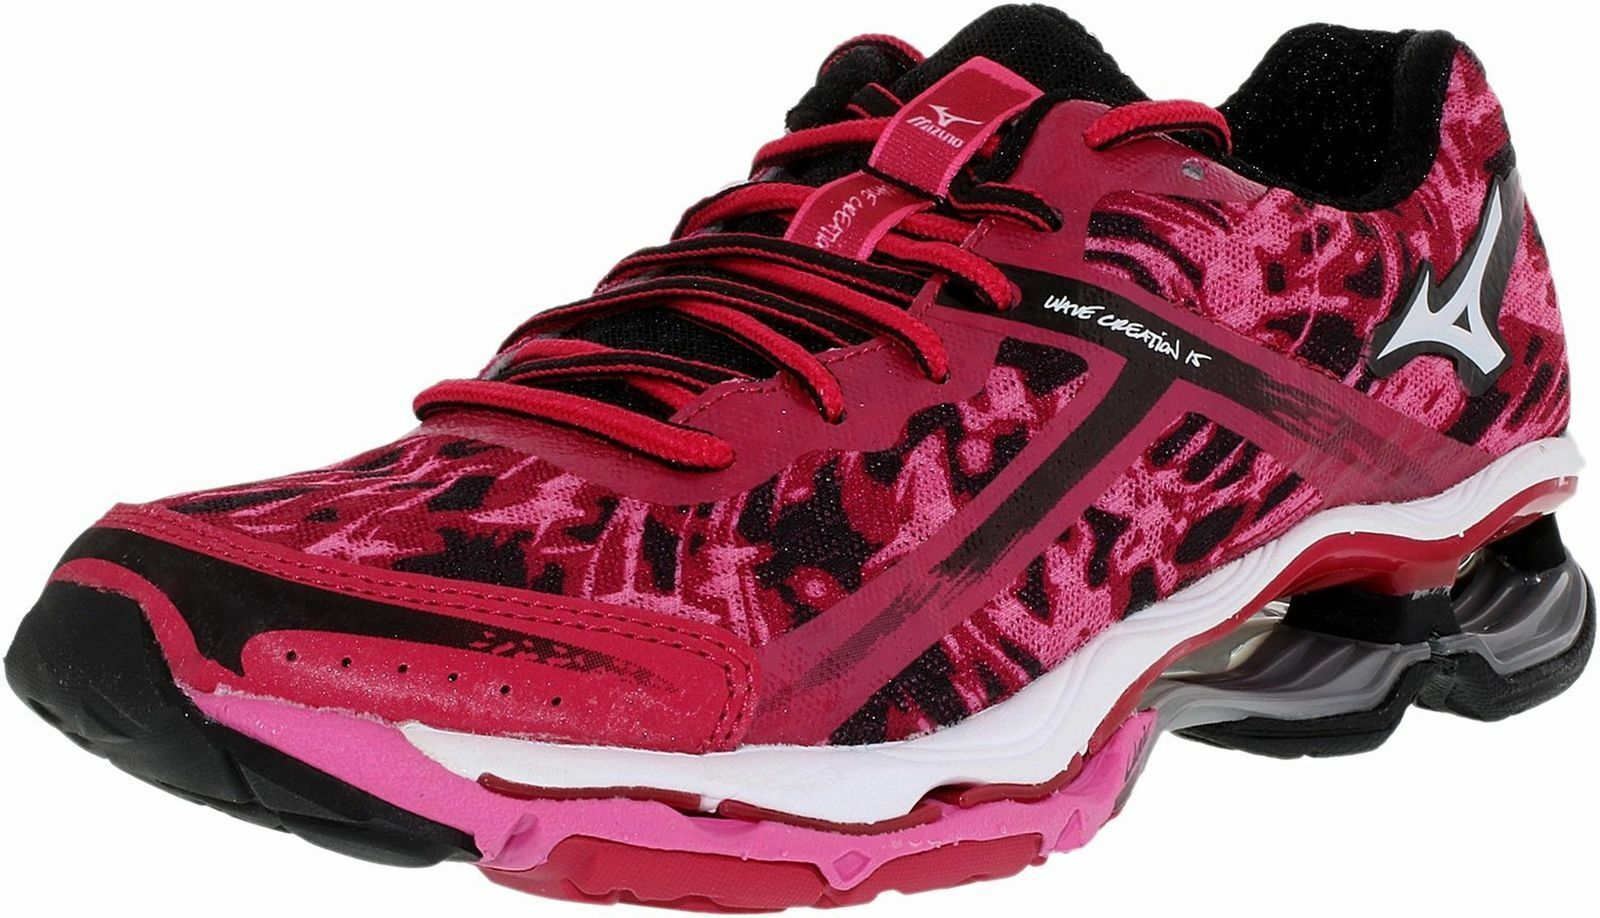 NEU Damenschuhe MIZUNO WAVE CREATION 15 RUNNING Schuhe - 6.5 / EUR 36.5 - AUTHENTIC